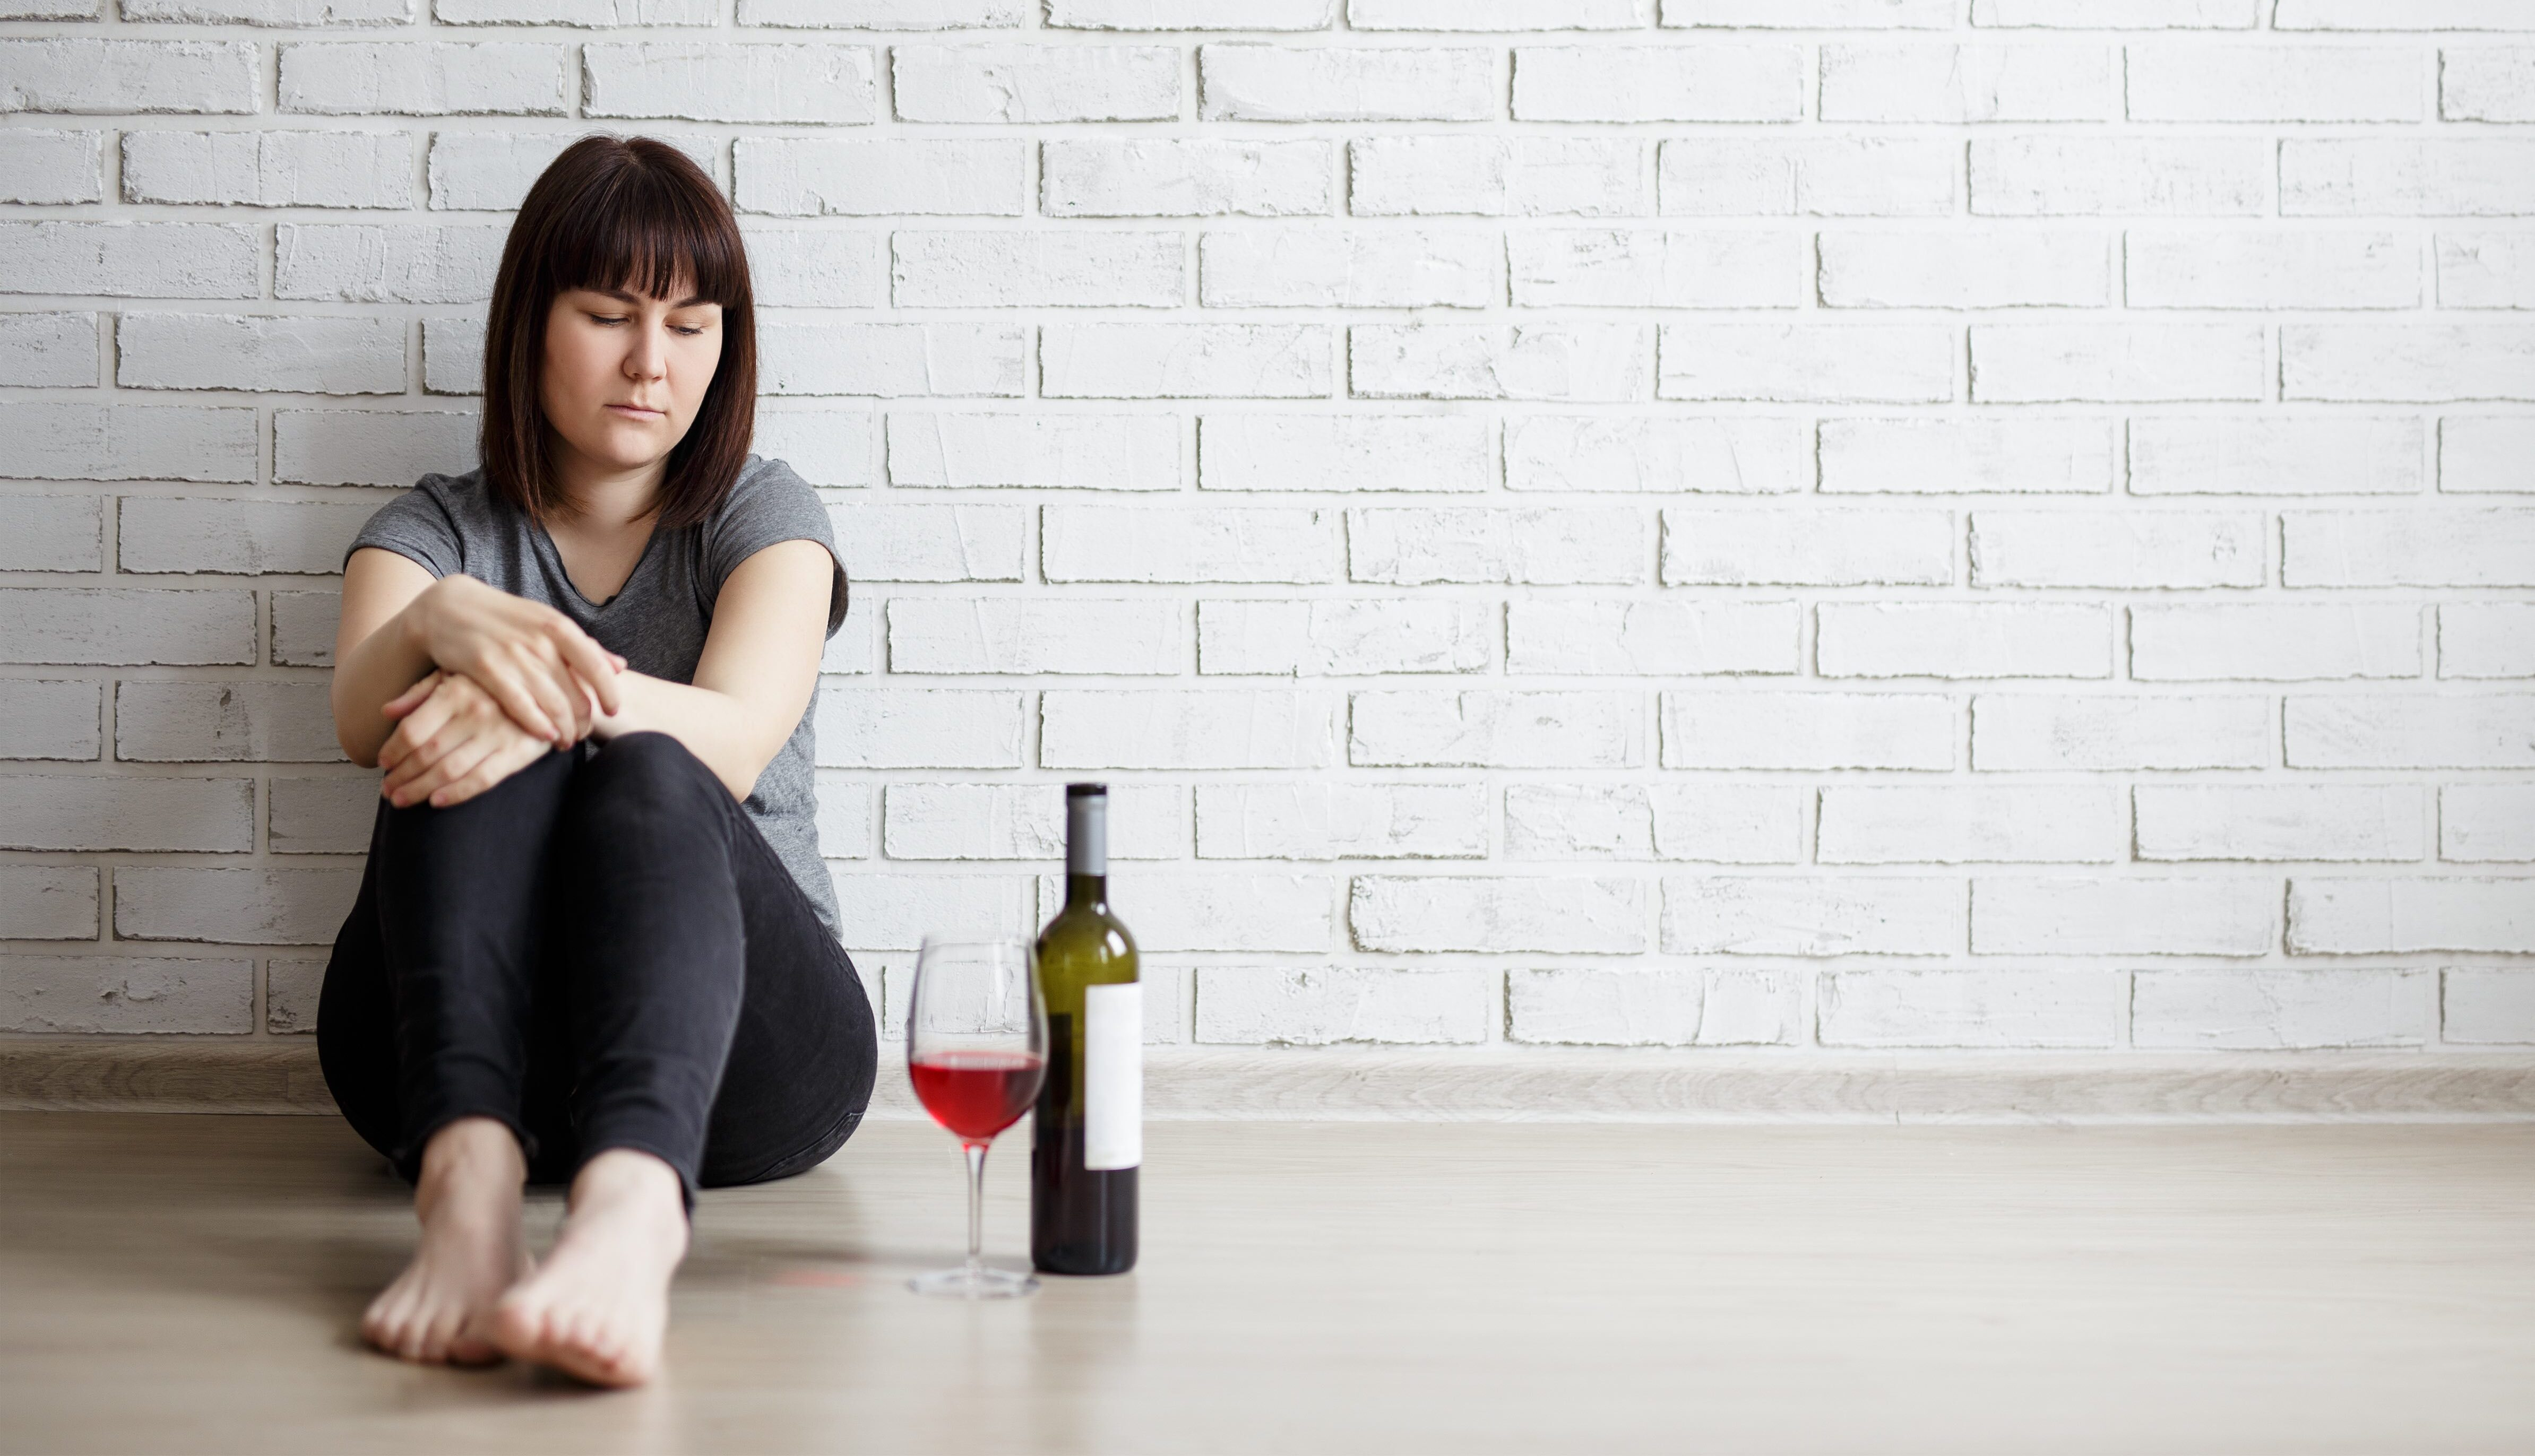 Alcohol can offer a numbing respite from grief but it doesn't truly help us recover from the loss of a loved one. (Di Studio/Shutterstock)